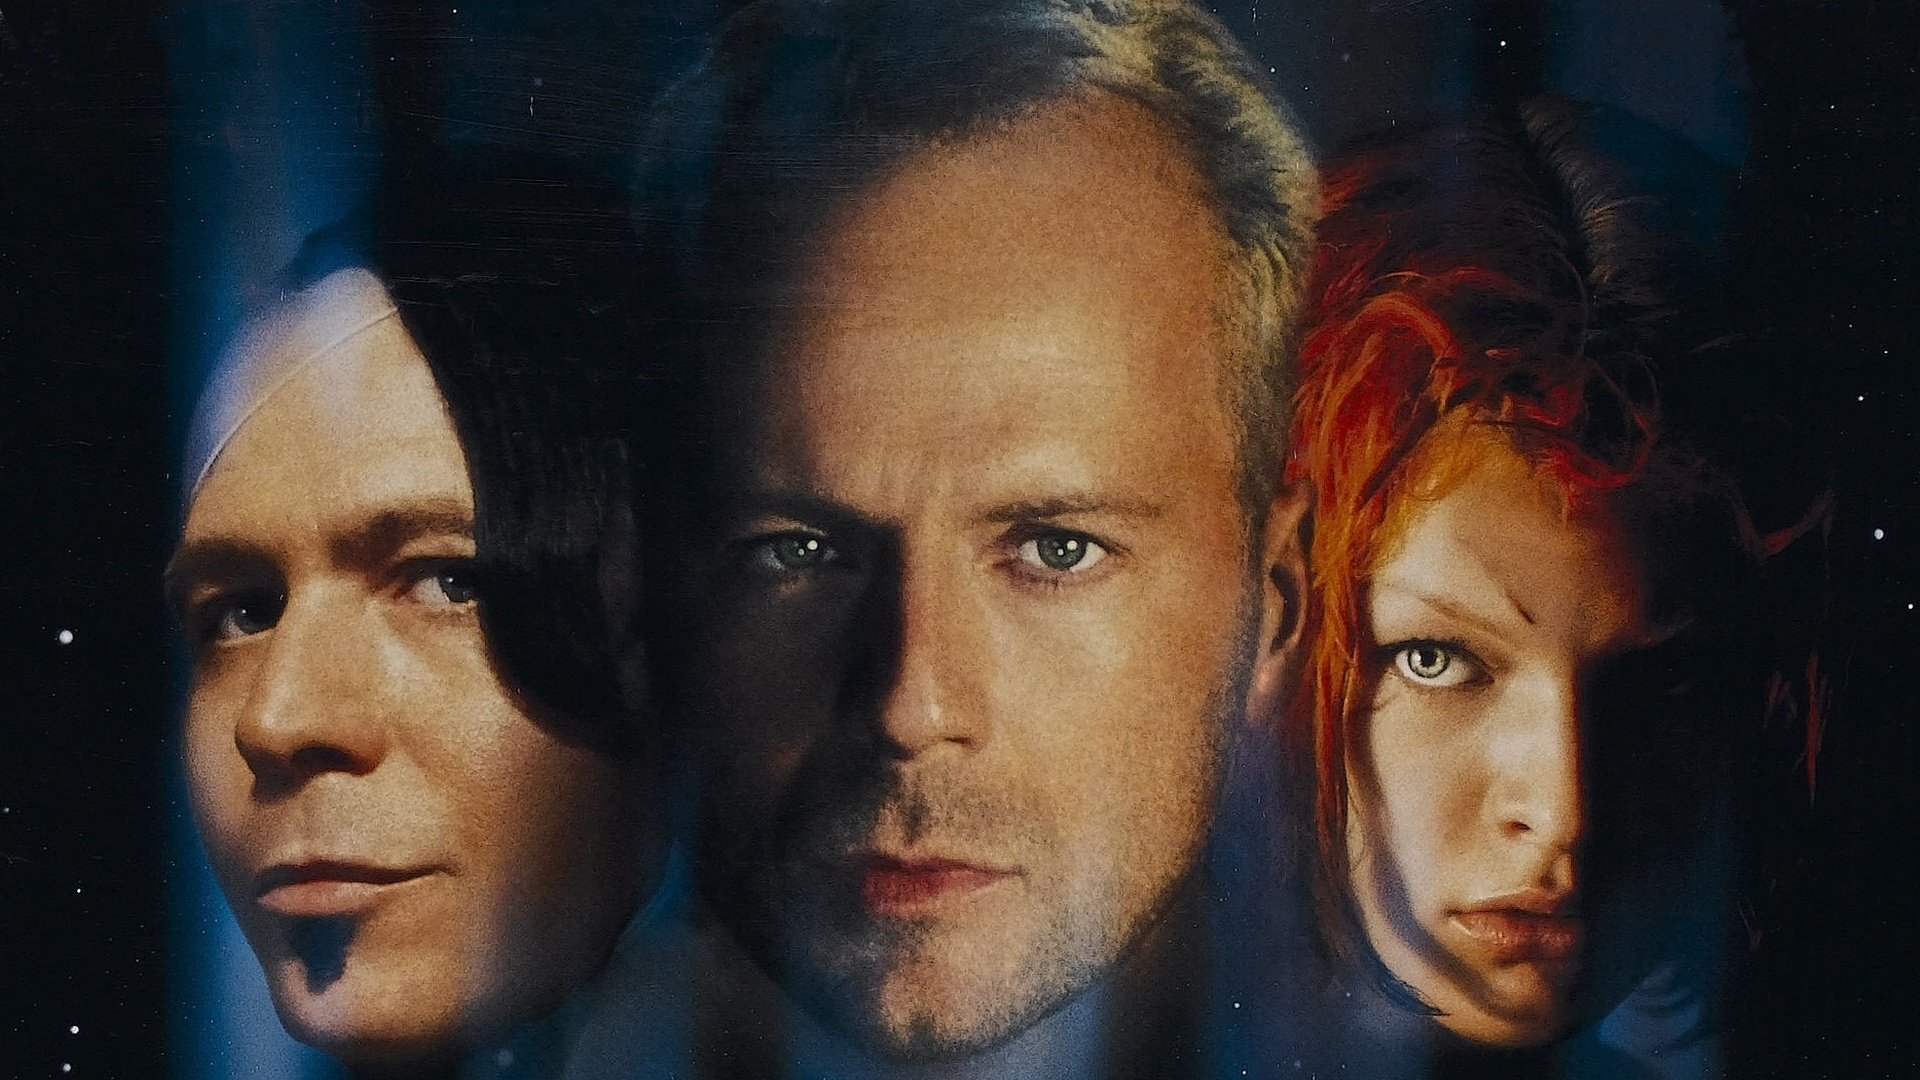 33 The Fifth Element HD Wallpapers Background Images   Wallpaper 1920x1080